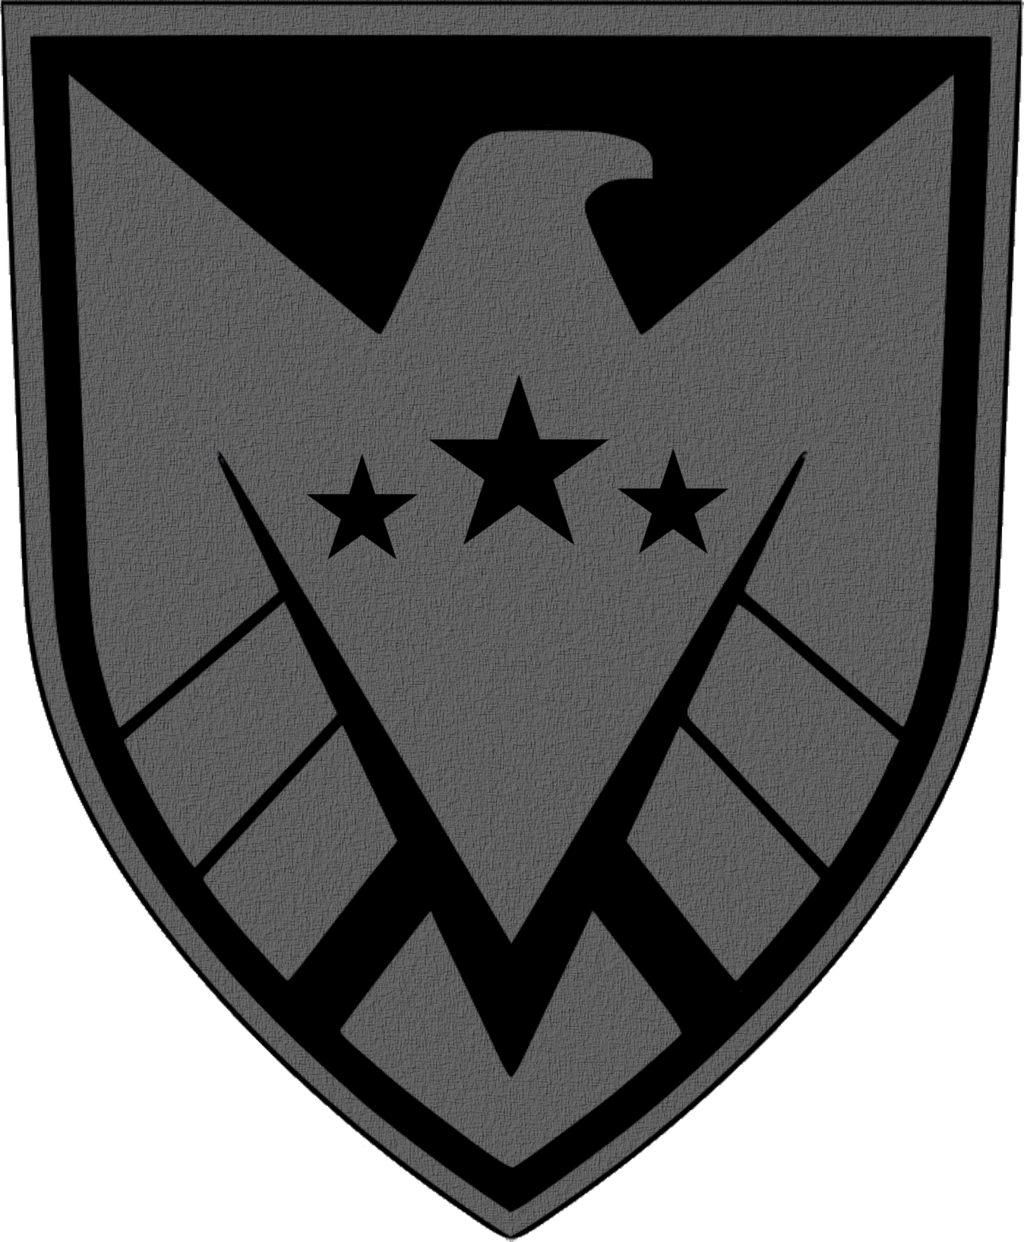 Possible New Marvel Shield Insignia By Viperaviator On Deviantart